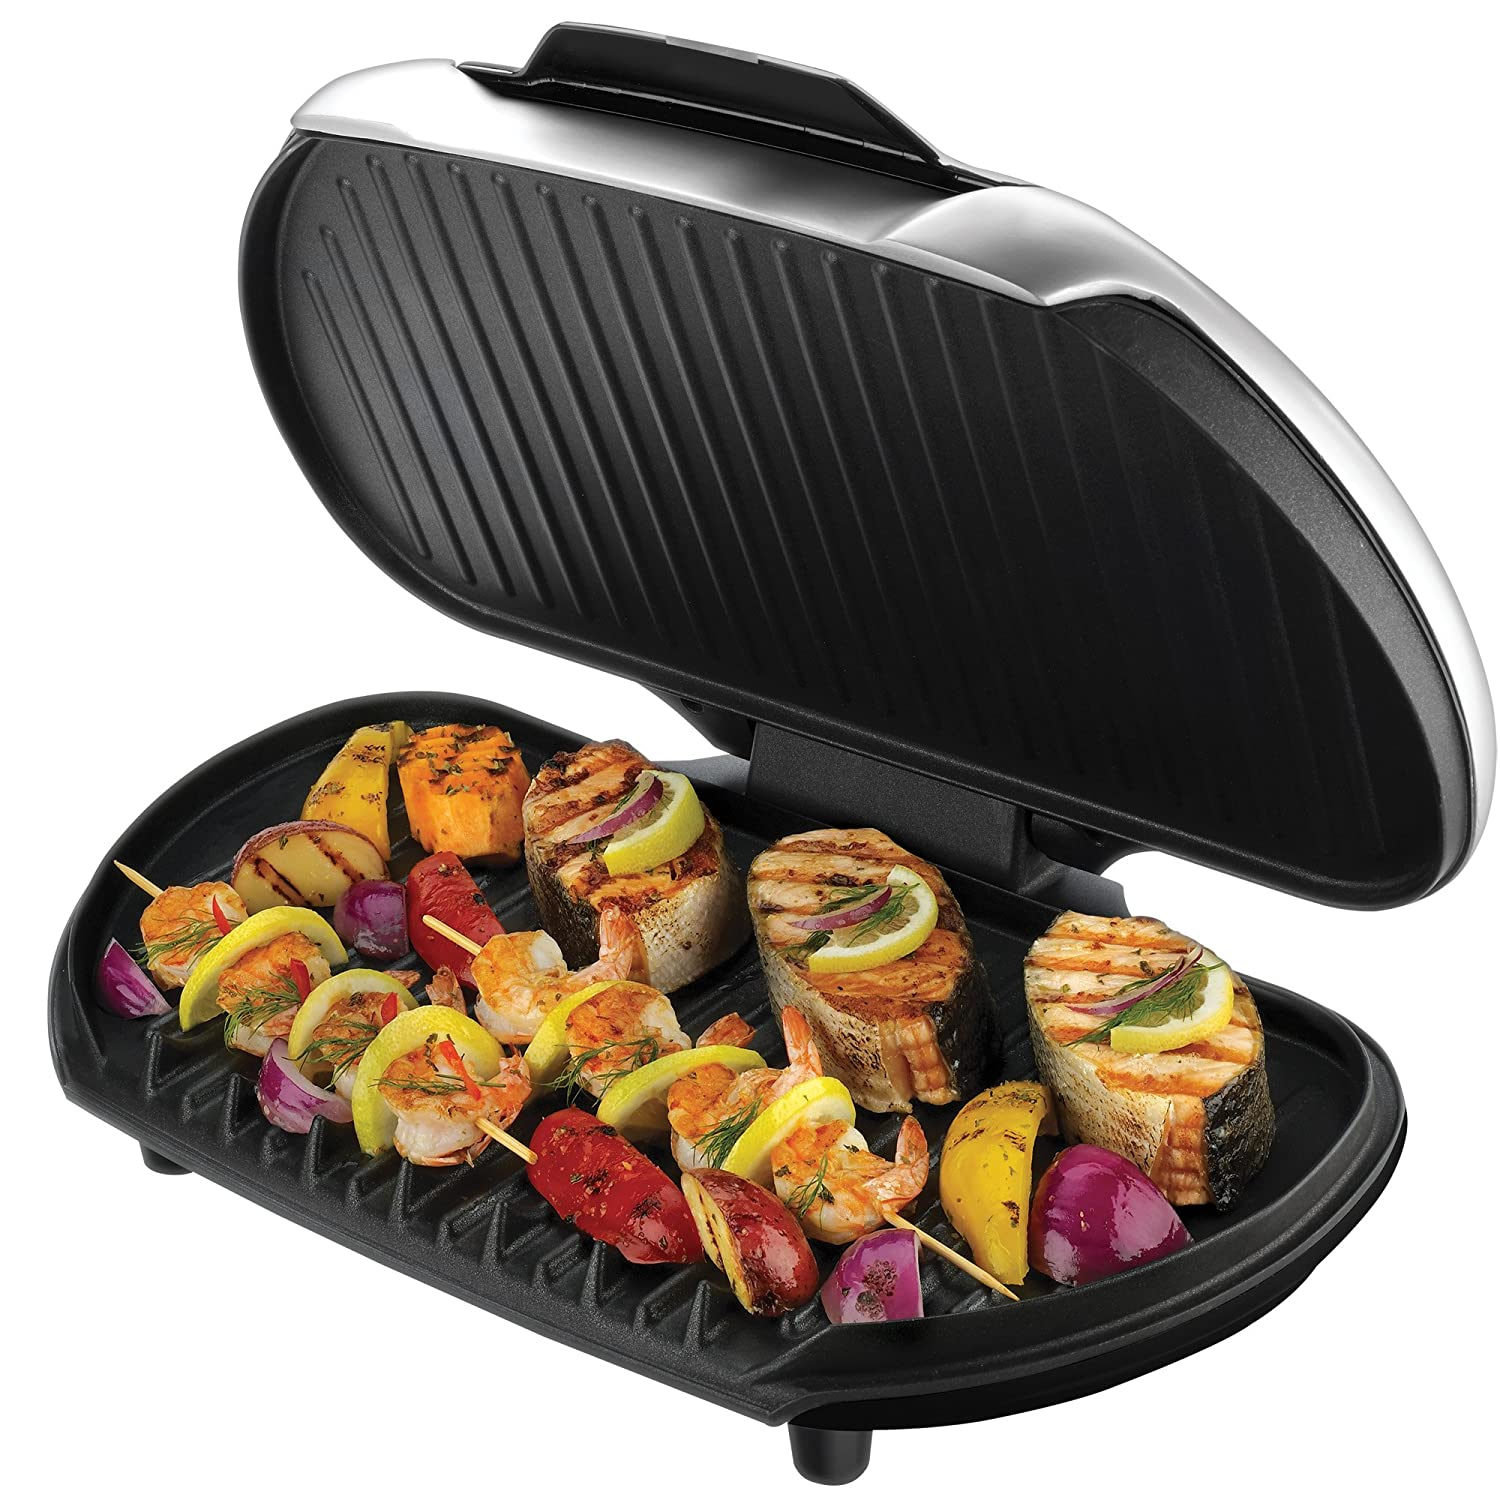 product description the george foreman grill prepares healthy reduced ...